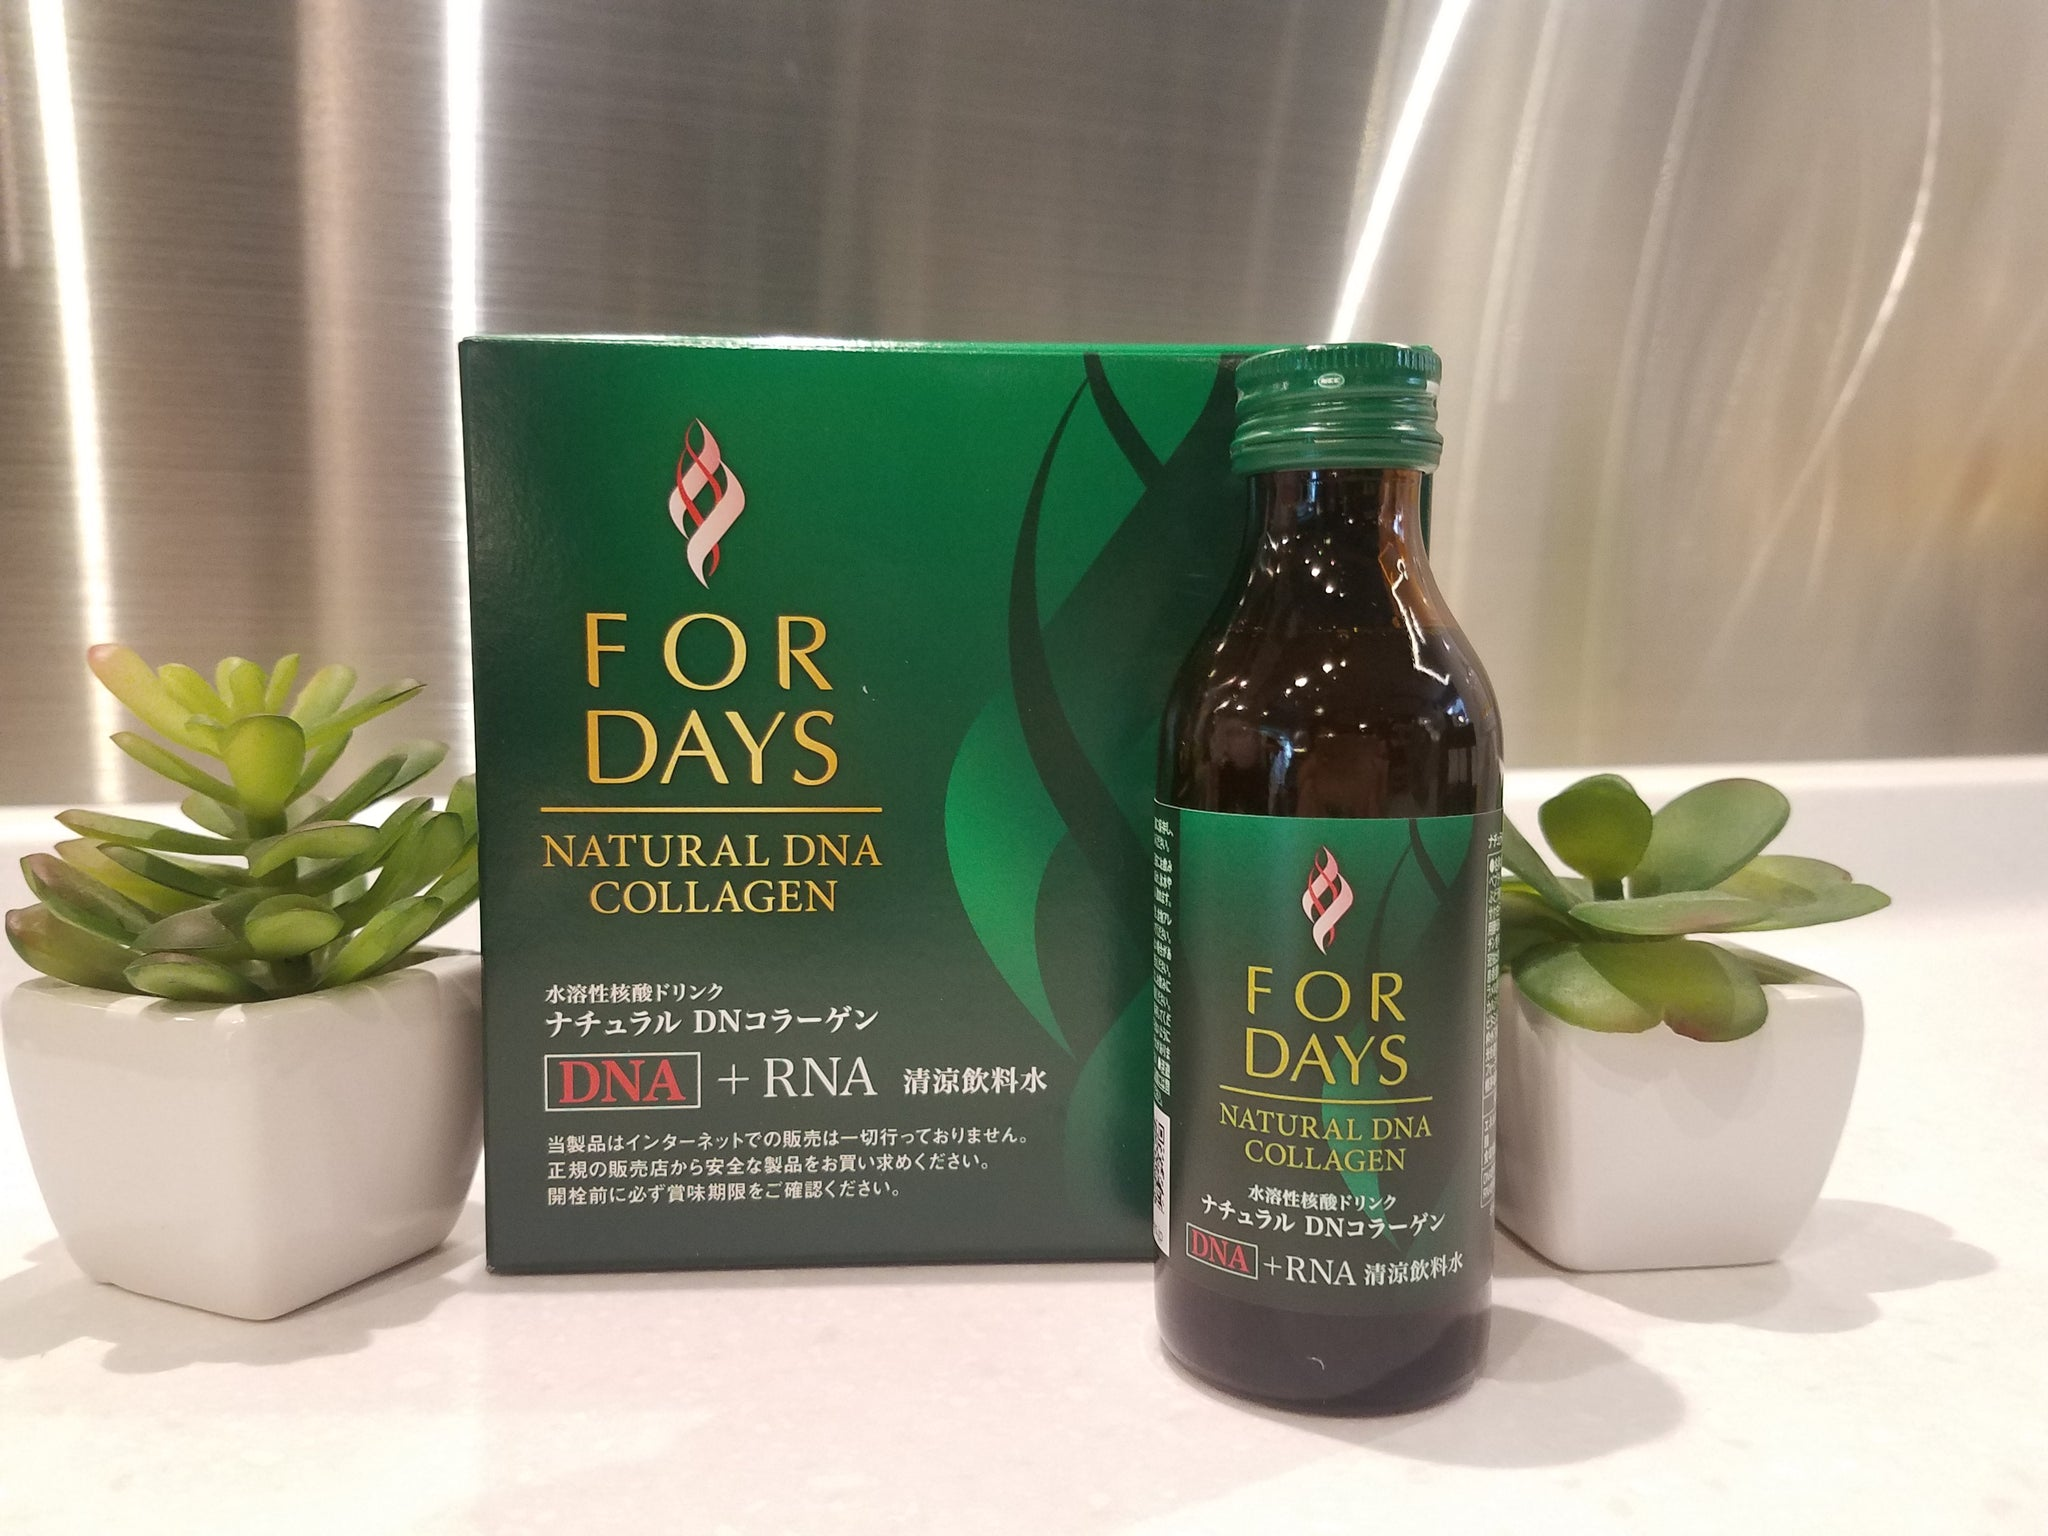 Fordays Natural DNA Collagen 100ML x 3 Bottles (Limited Time Free Delivery)